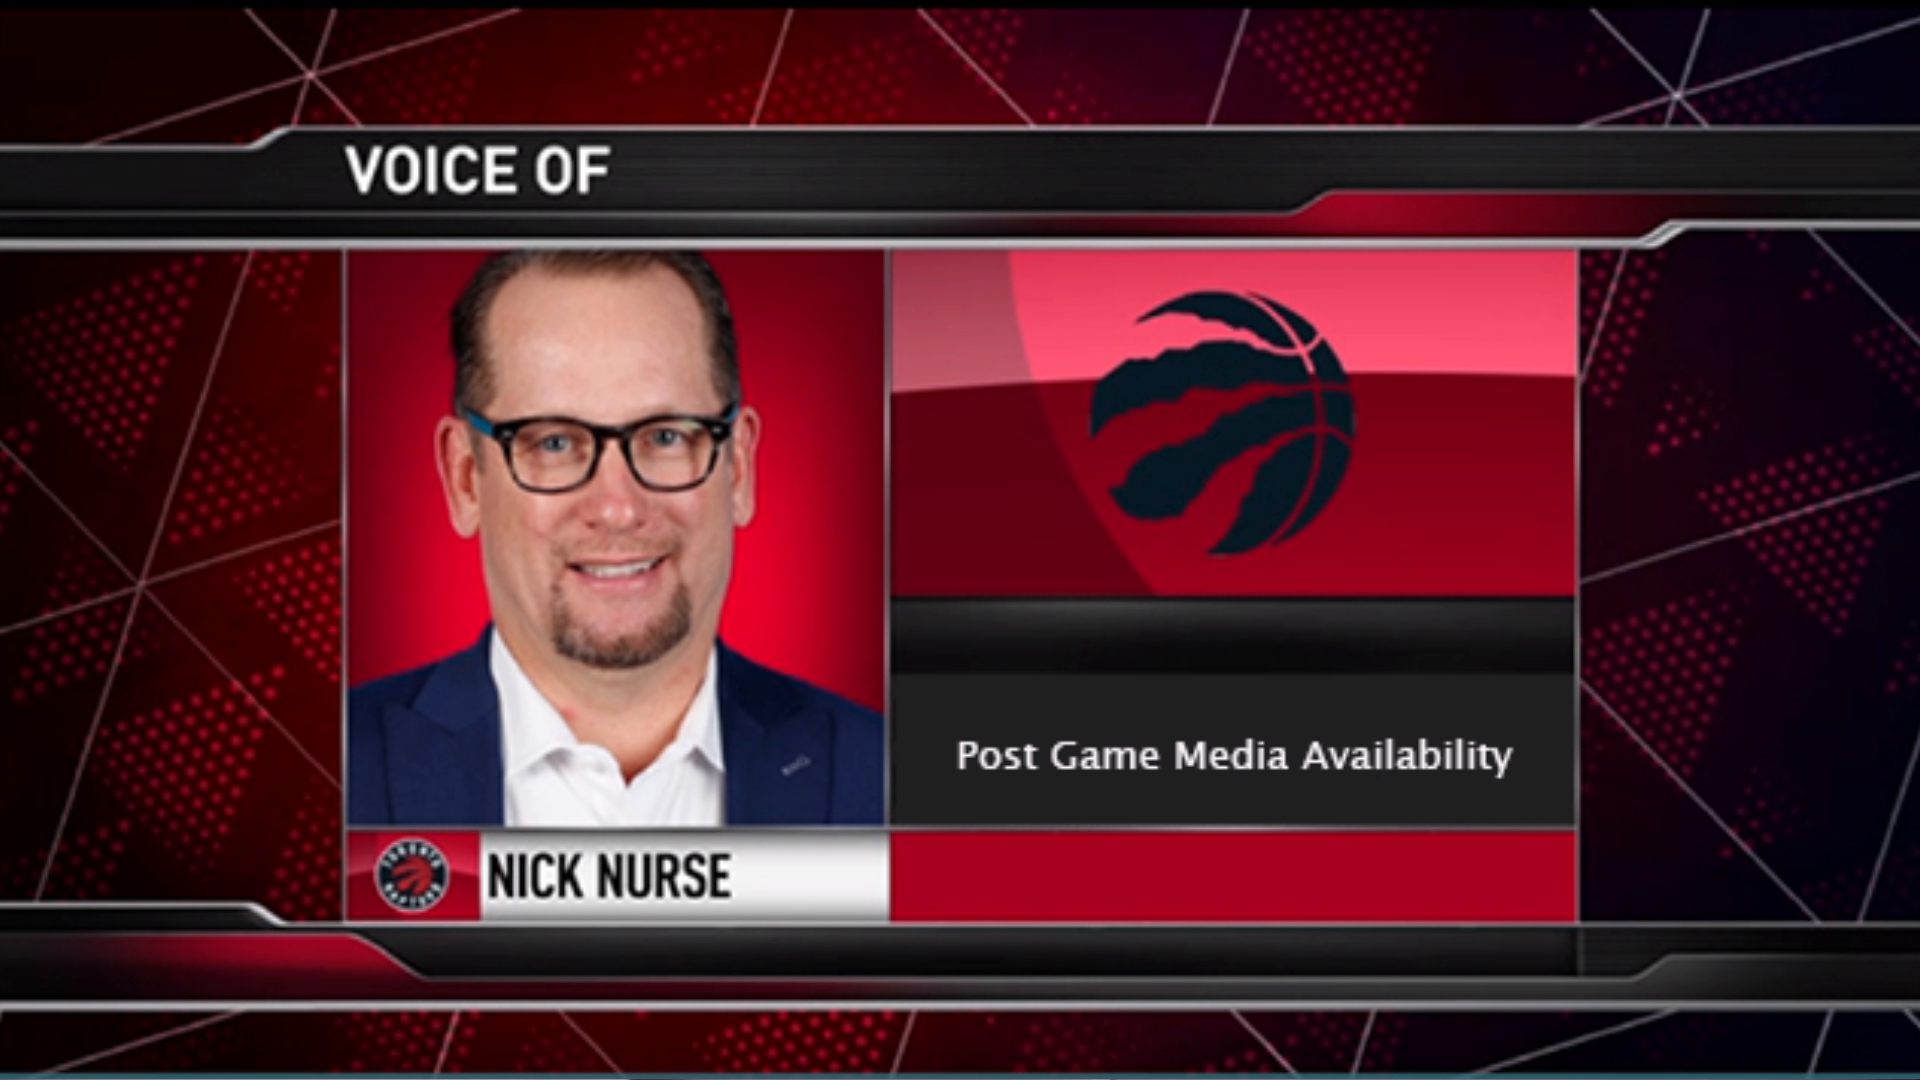 Post Game: Nick Nurse - May 4, 2021